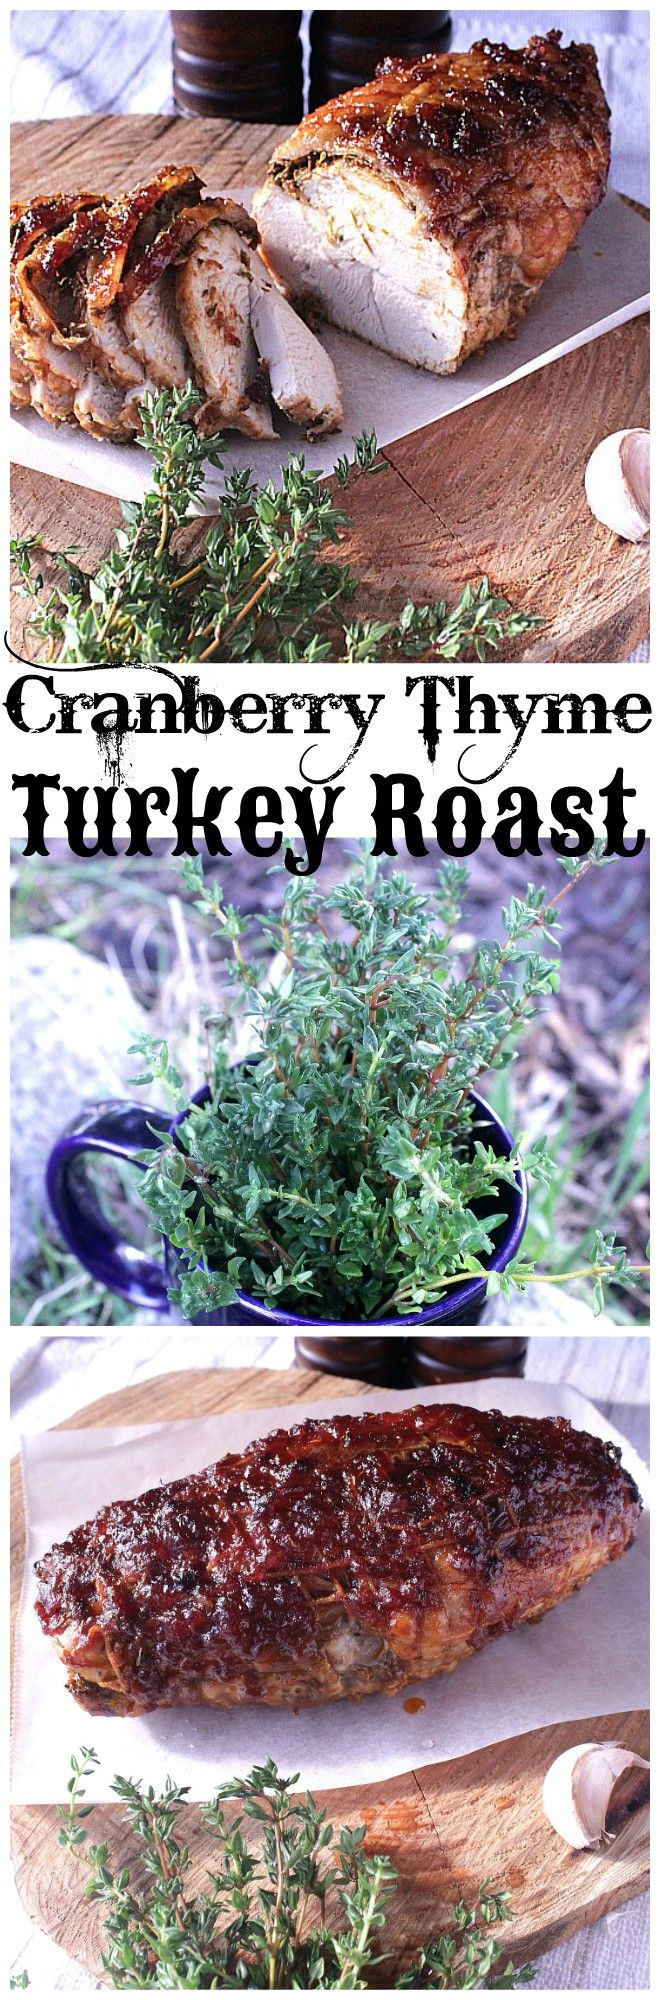 Cranberry meets thyme to create a harmony of flavours in this to die for turkey roast. Whether it be the star of the show or the guts to your wrap, you'll love this baby!